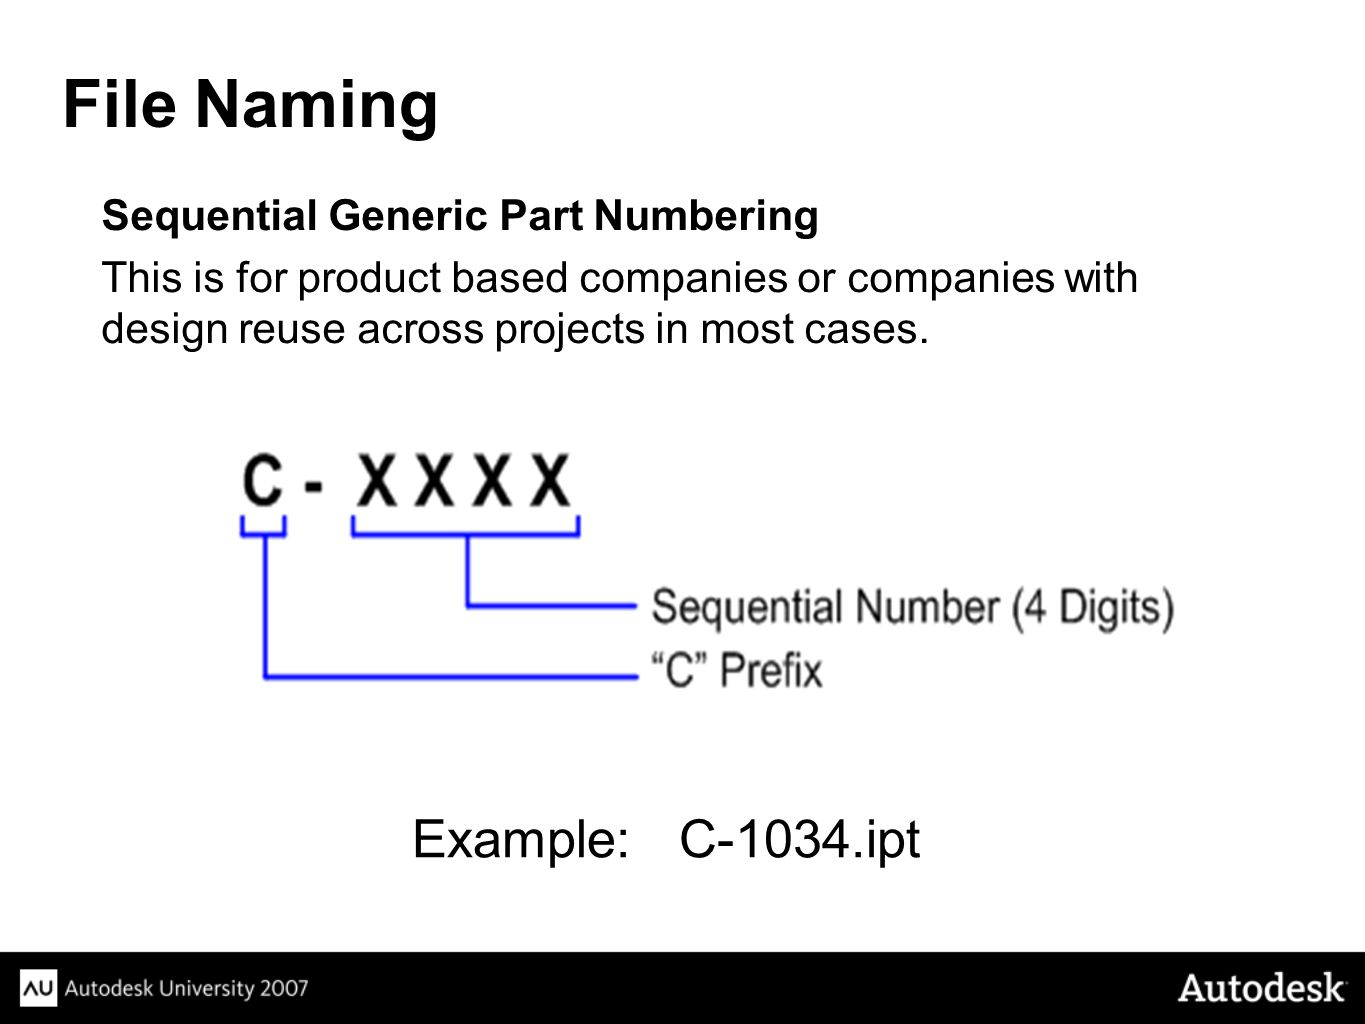 Sequential Generic Part Numbering This is for product based companies or companies with design reuse across projects in most cases.